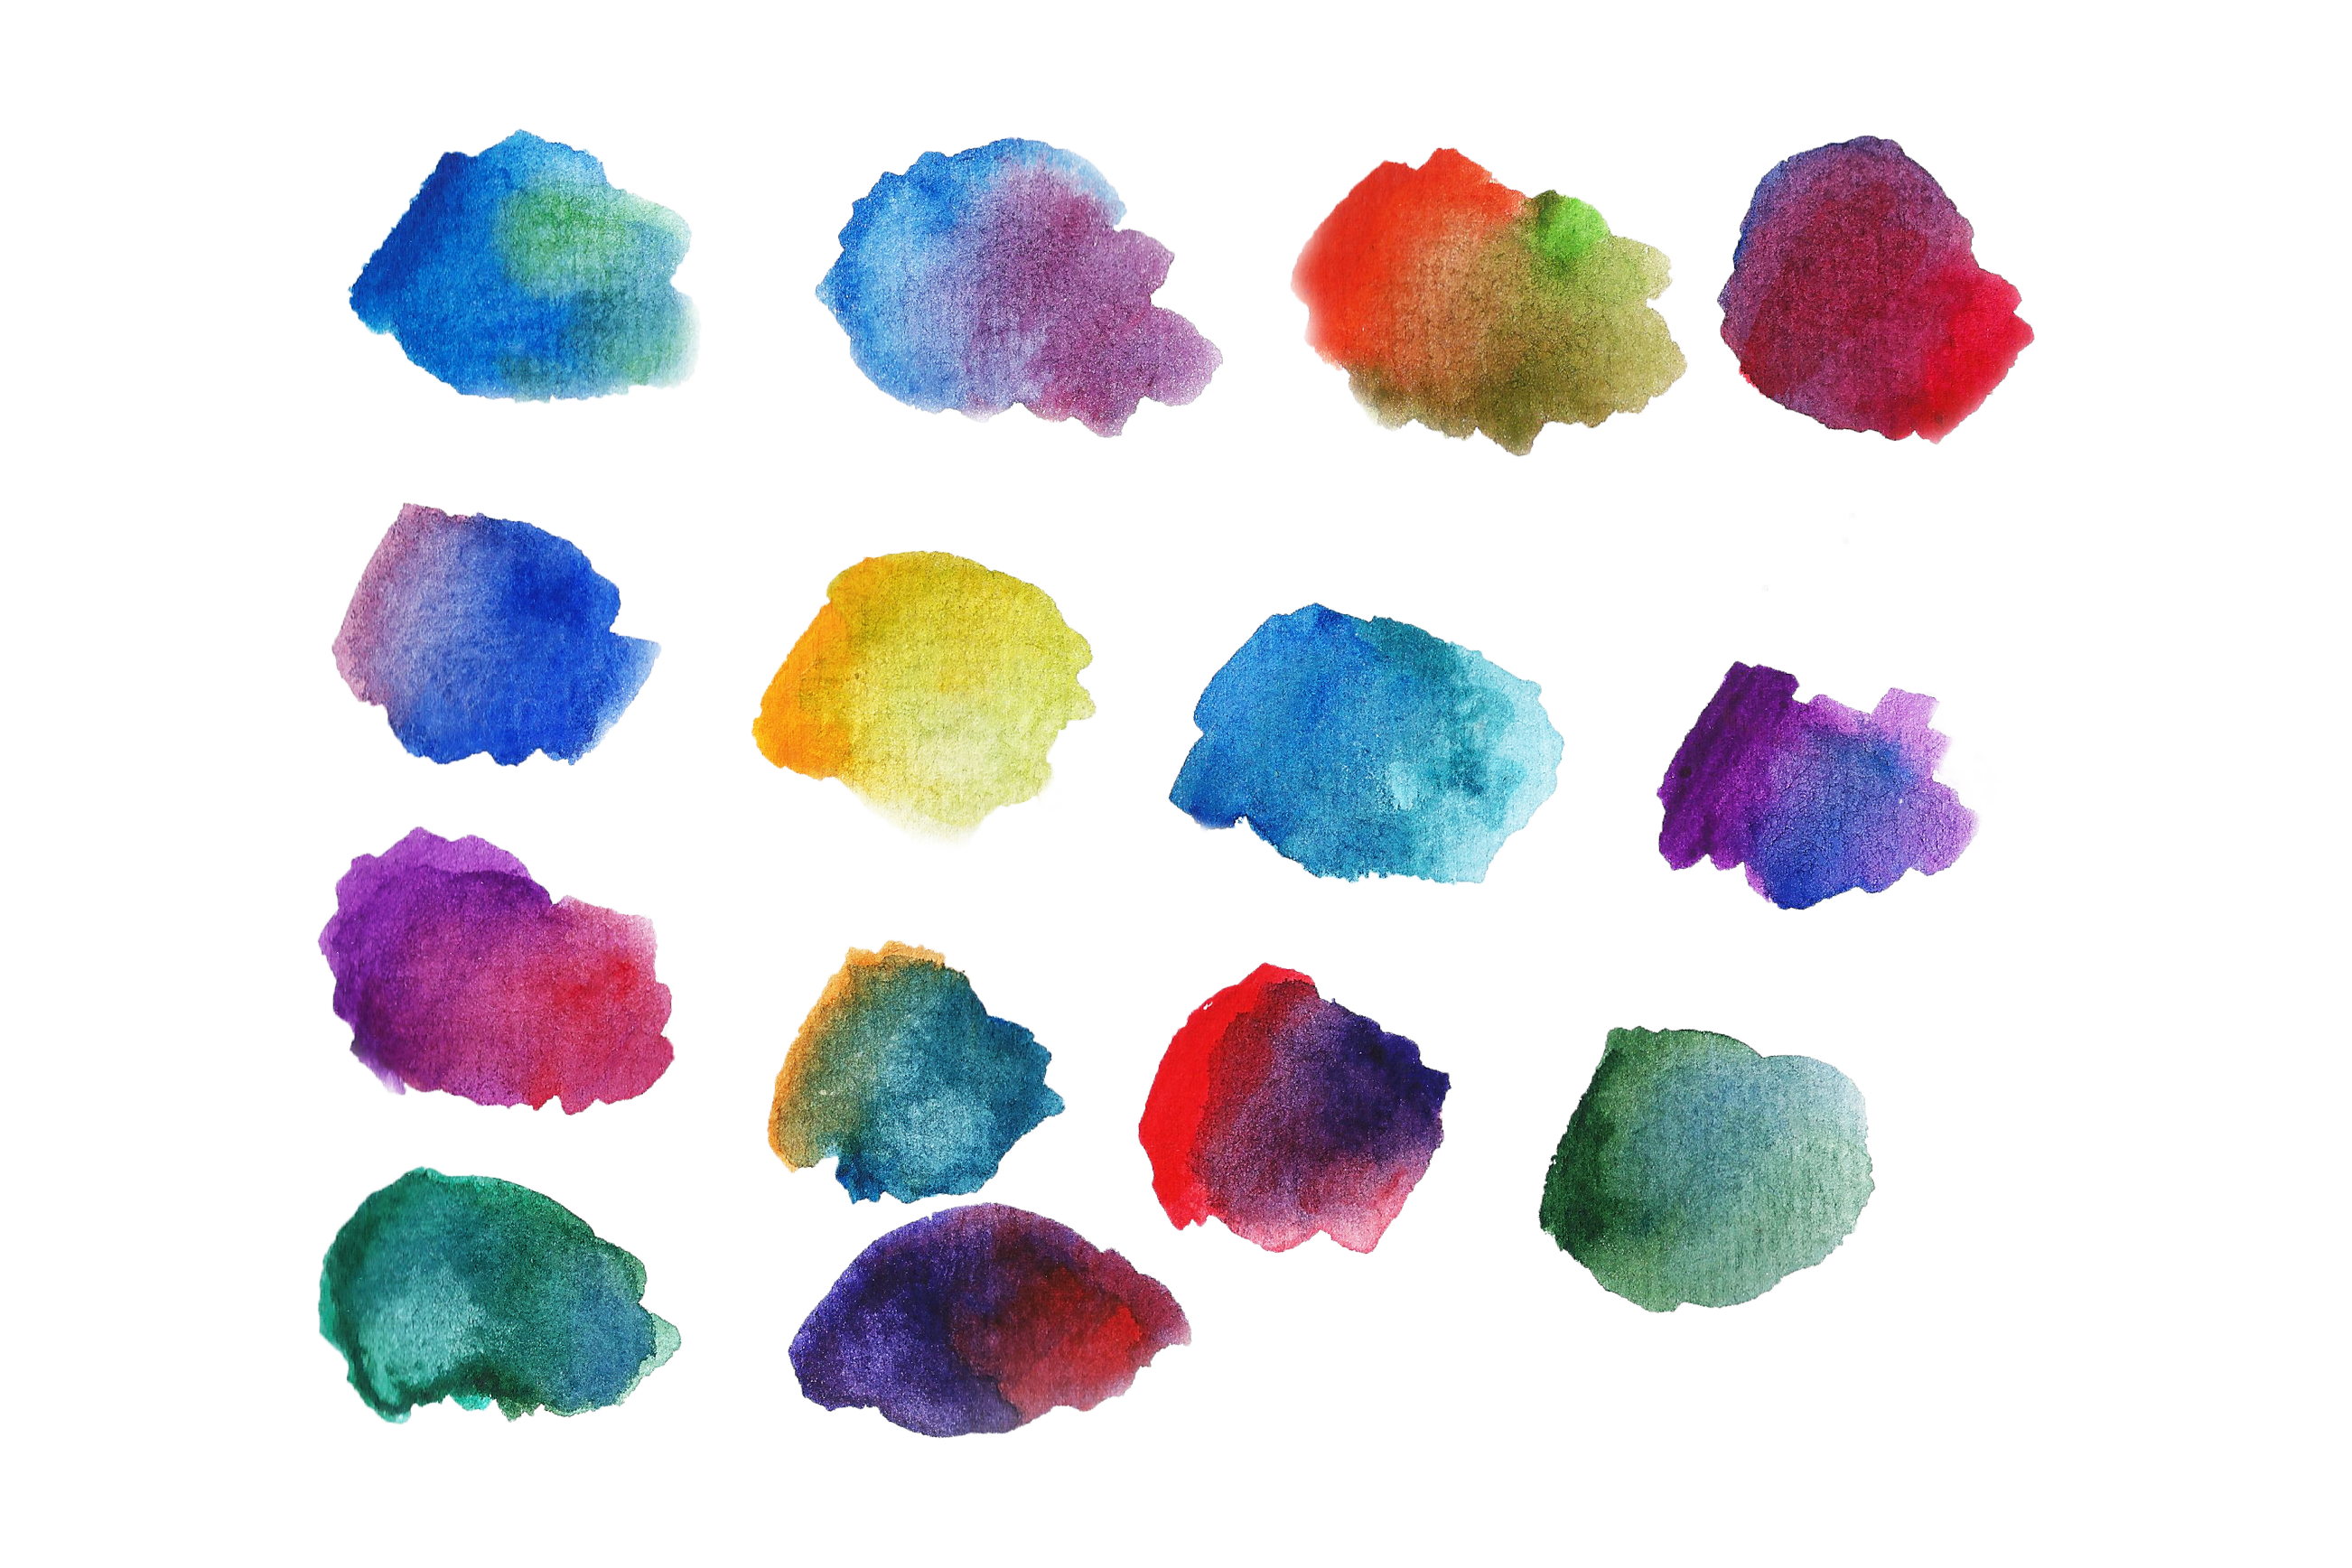 Basic Watercolor Shapes example image 4